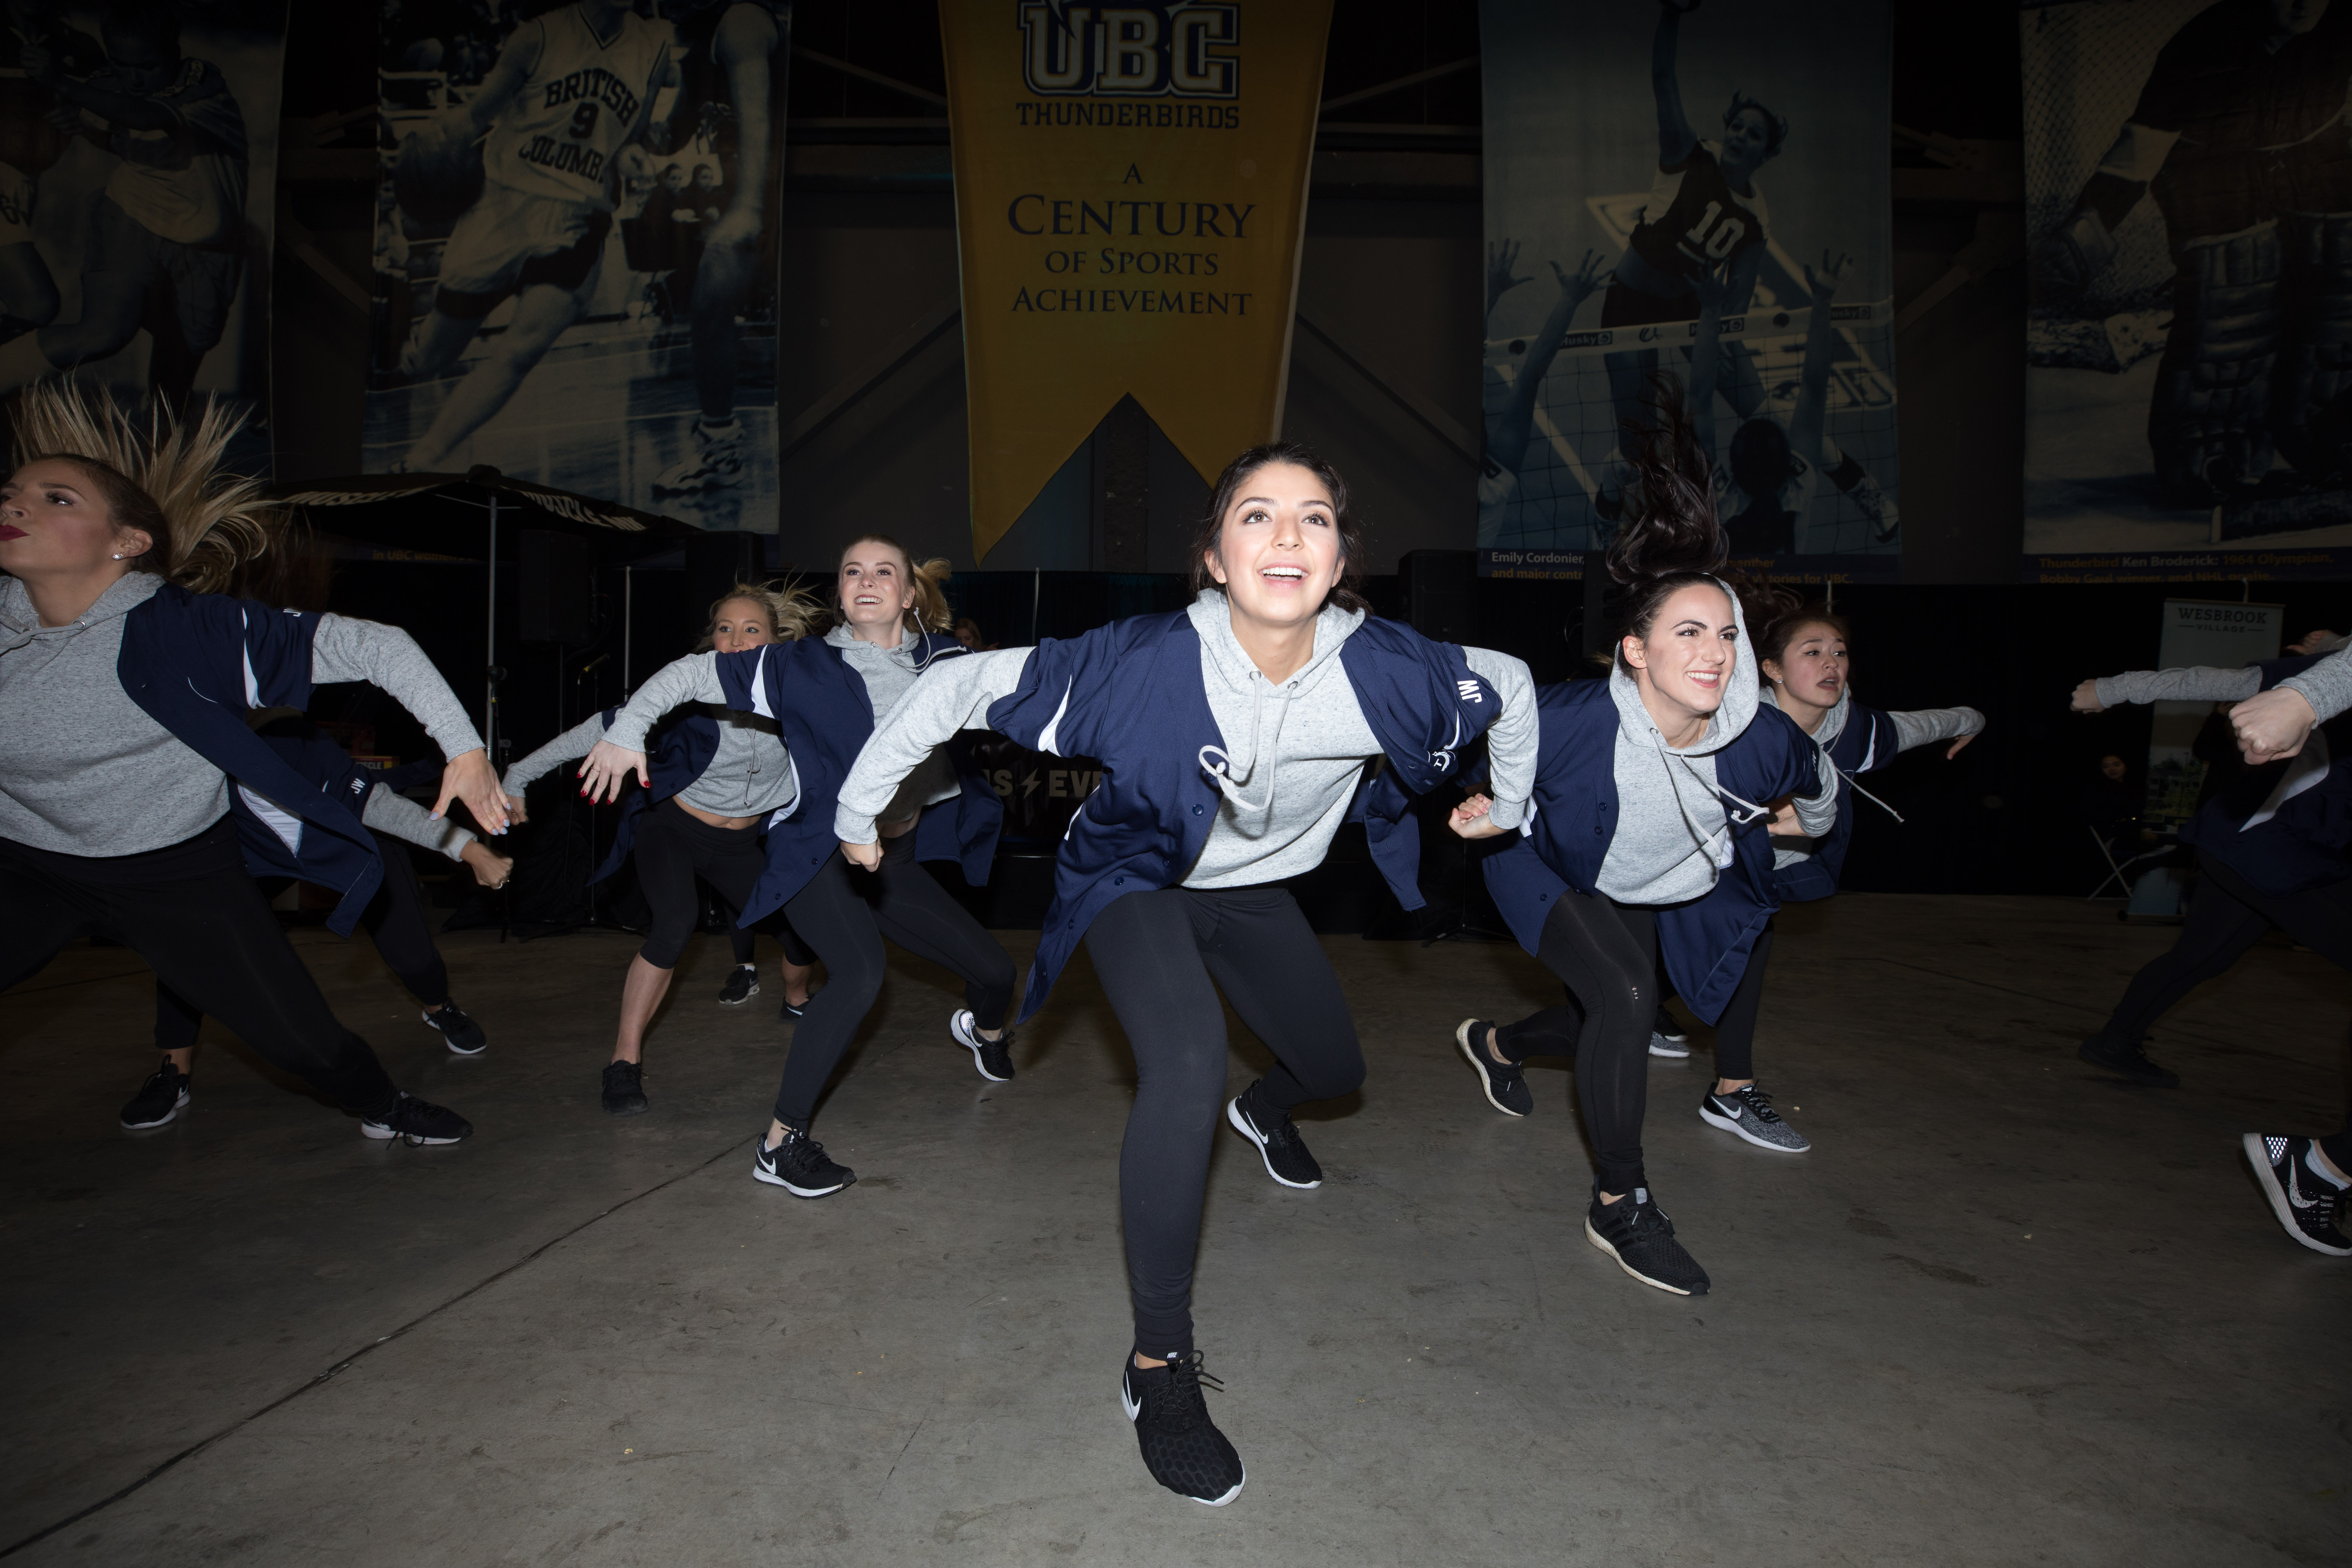 Dance team at winter classic